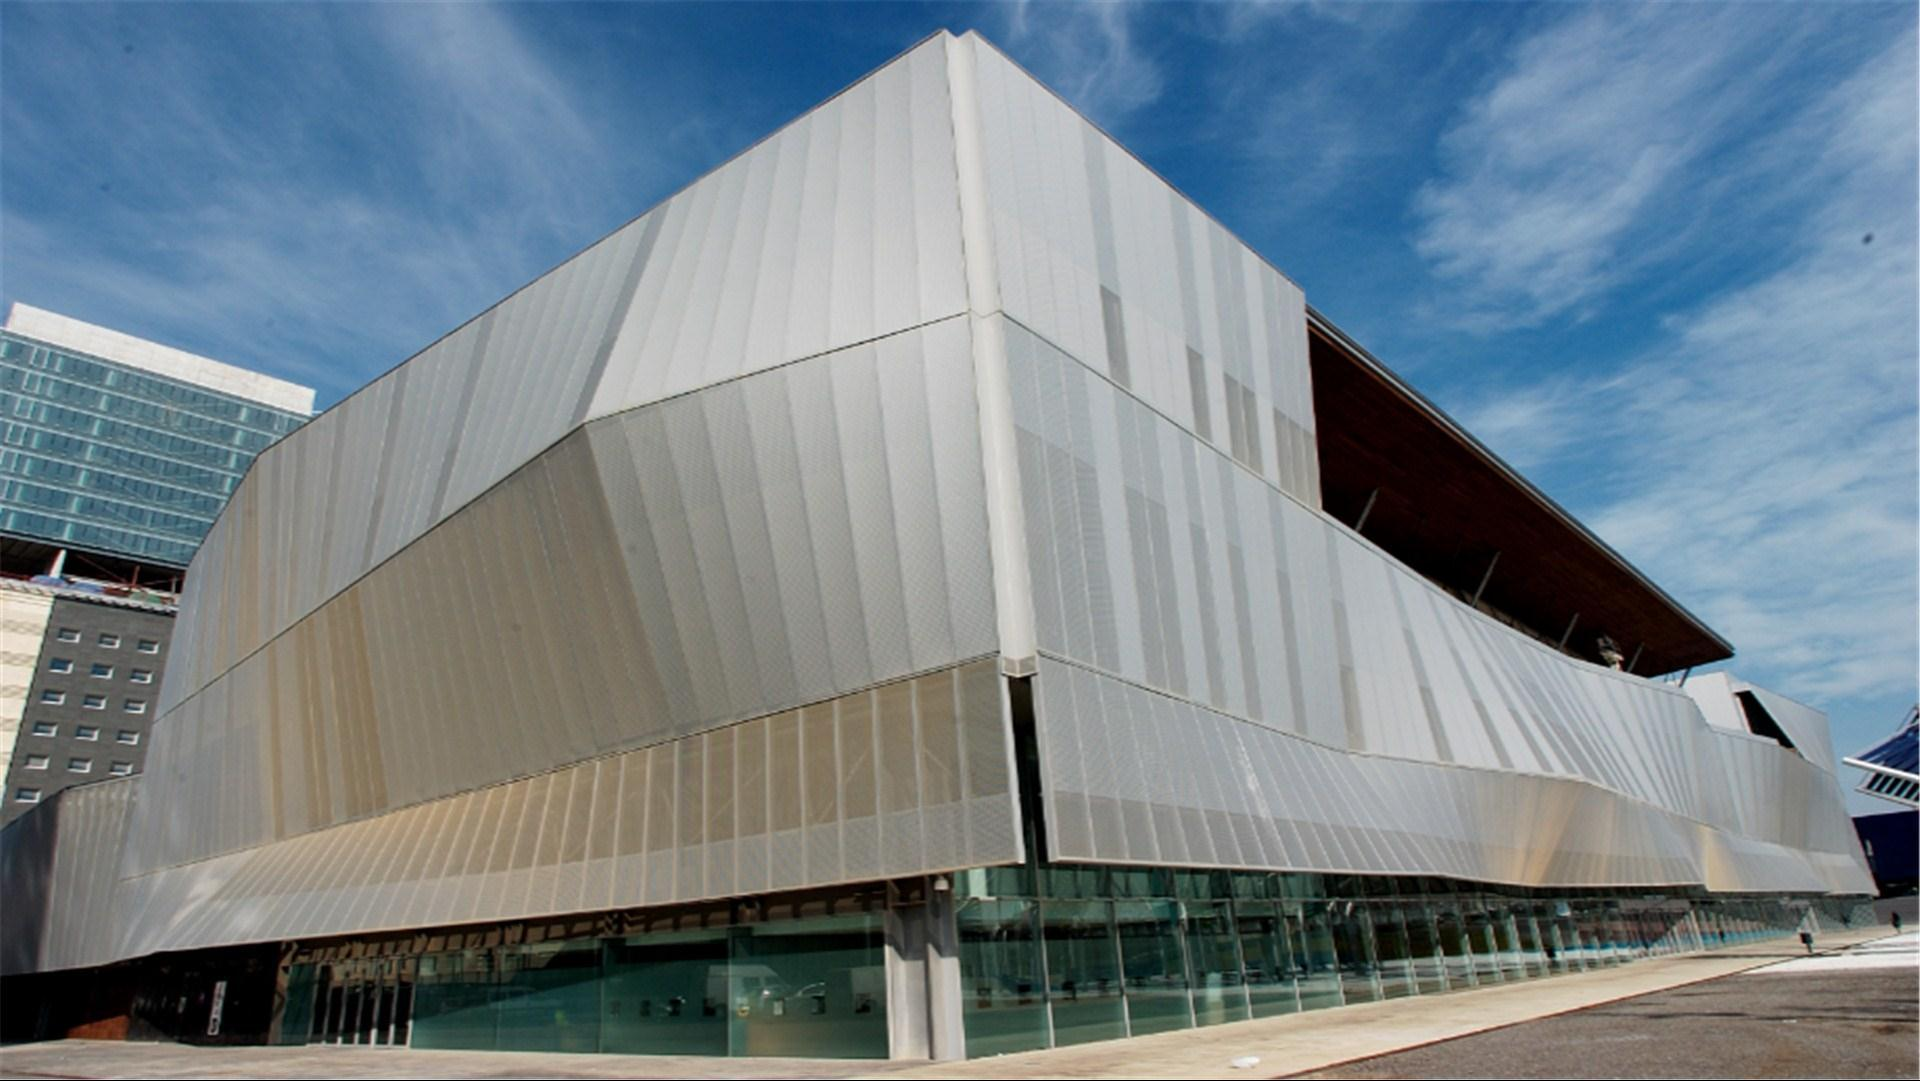 Barcelona Convention Center